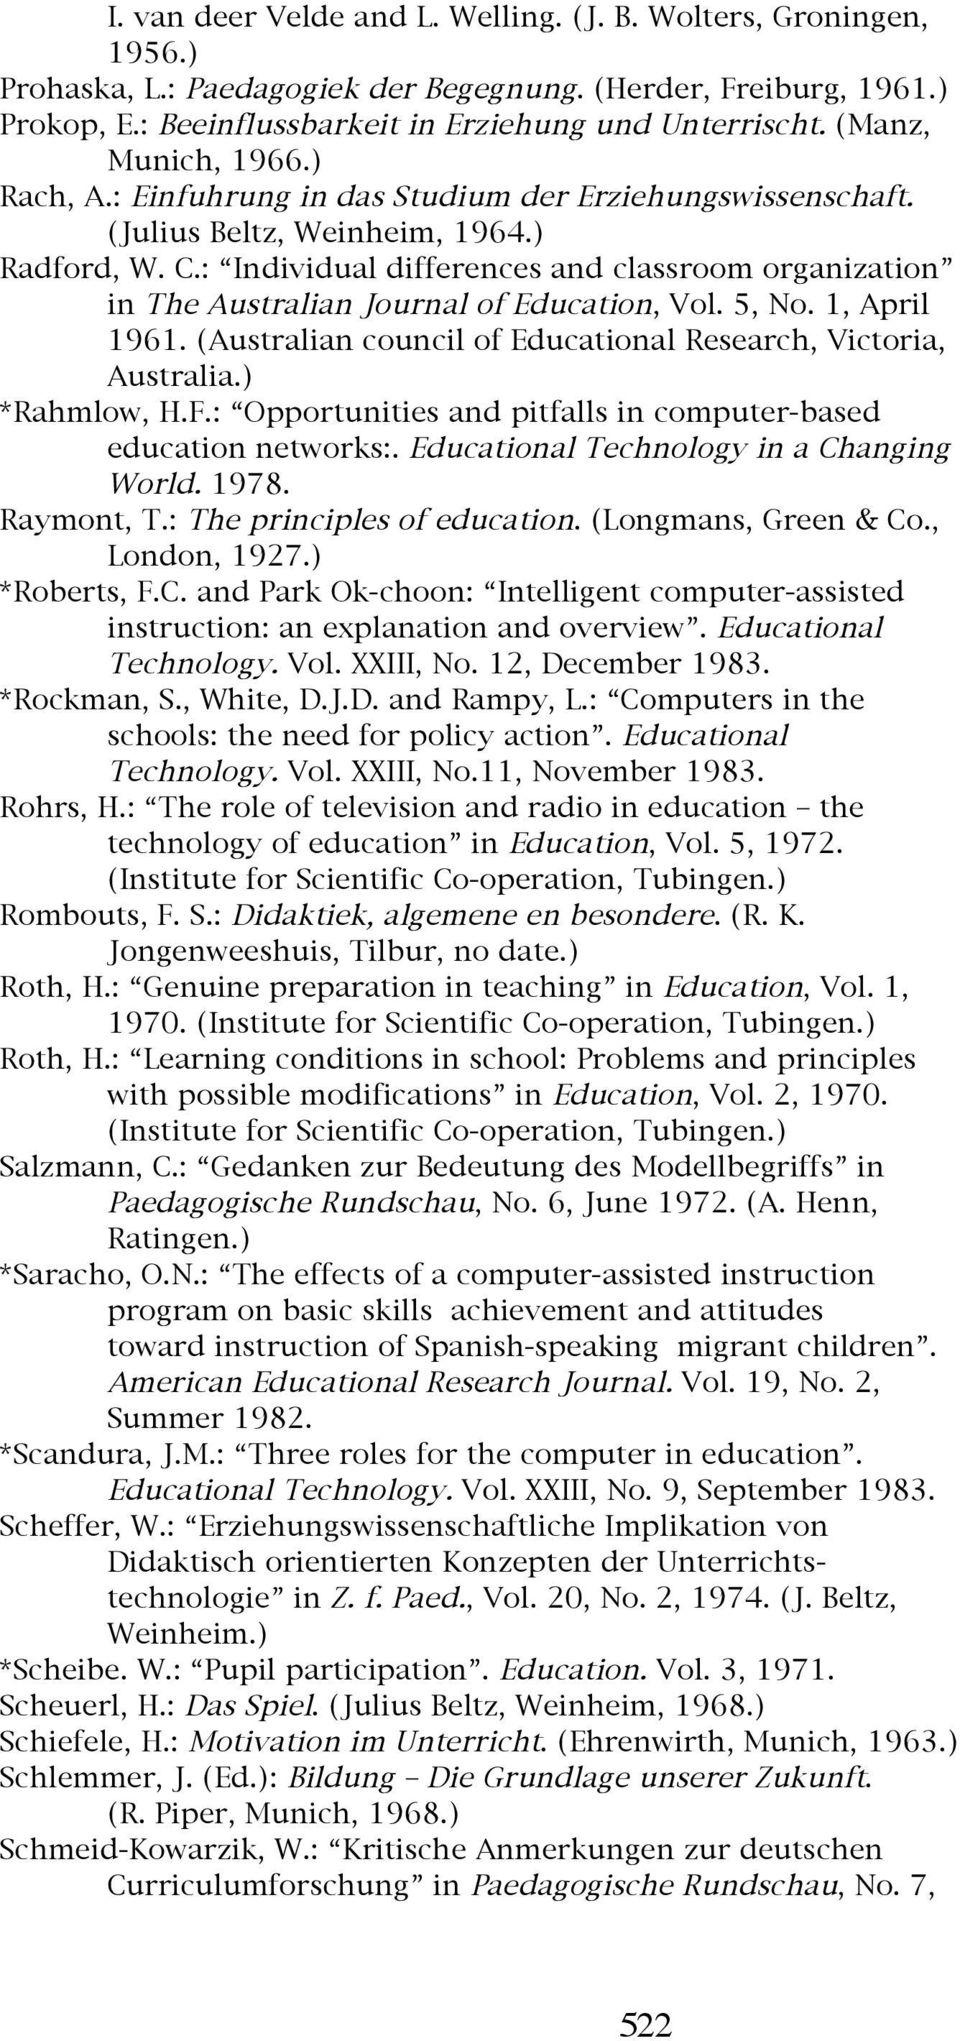 : Individual differences and classroom organization in The Australian Journal of Education, Vol. 5, No. 1, April 1961. (Australian council of Educational Research, Victoria, Australia.) *Rahmlow, H.F.